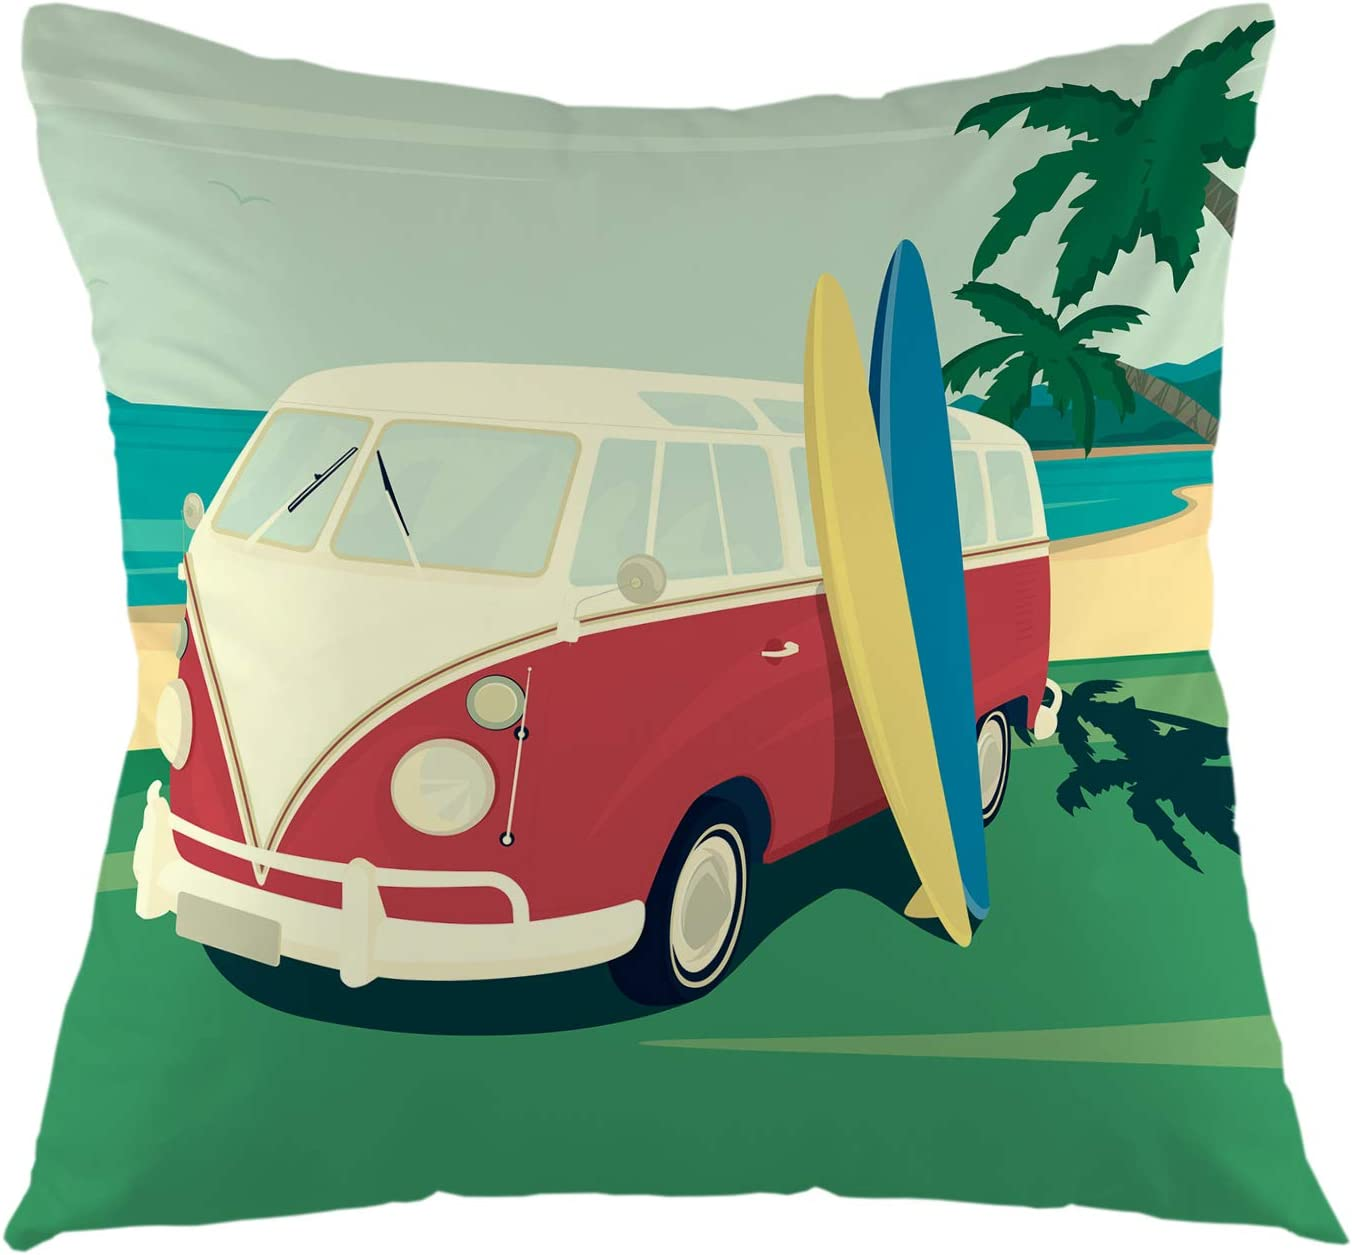 Amazon Com Ofloral Pillow Cover Red Bus With Two Surfboards Palm Tree On The Tropical Beach Ocean Retro Throw Pillow Case Square Cushion Cover For Sofa Couch Car Bed 18 X 18 Inch